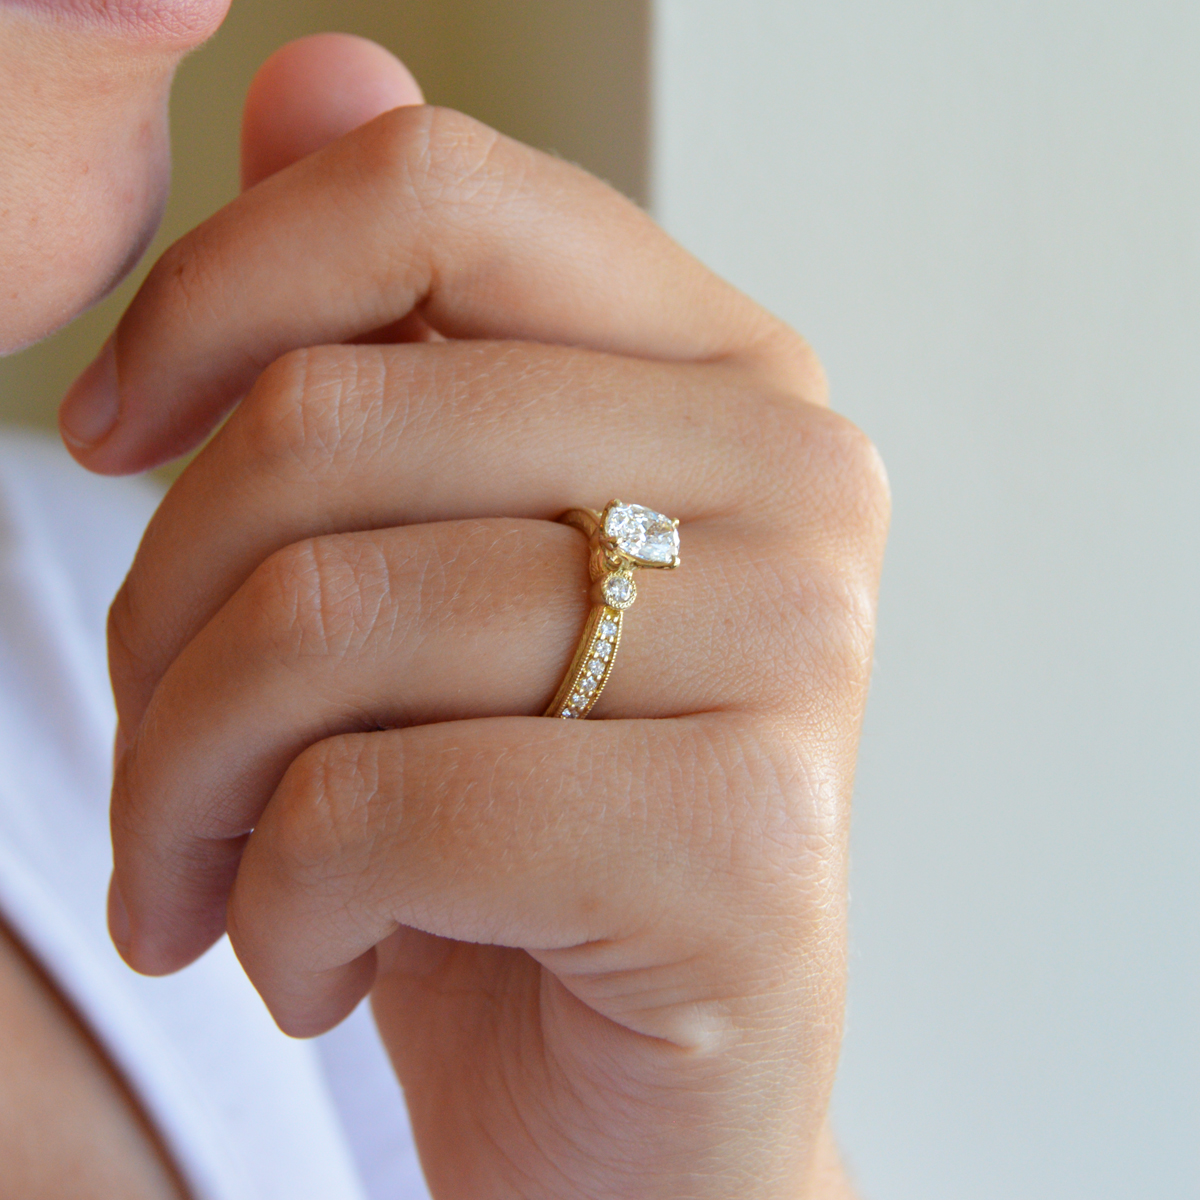 Vintage inspired Shah Carizza ring has a cushion-cut center stone.